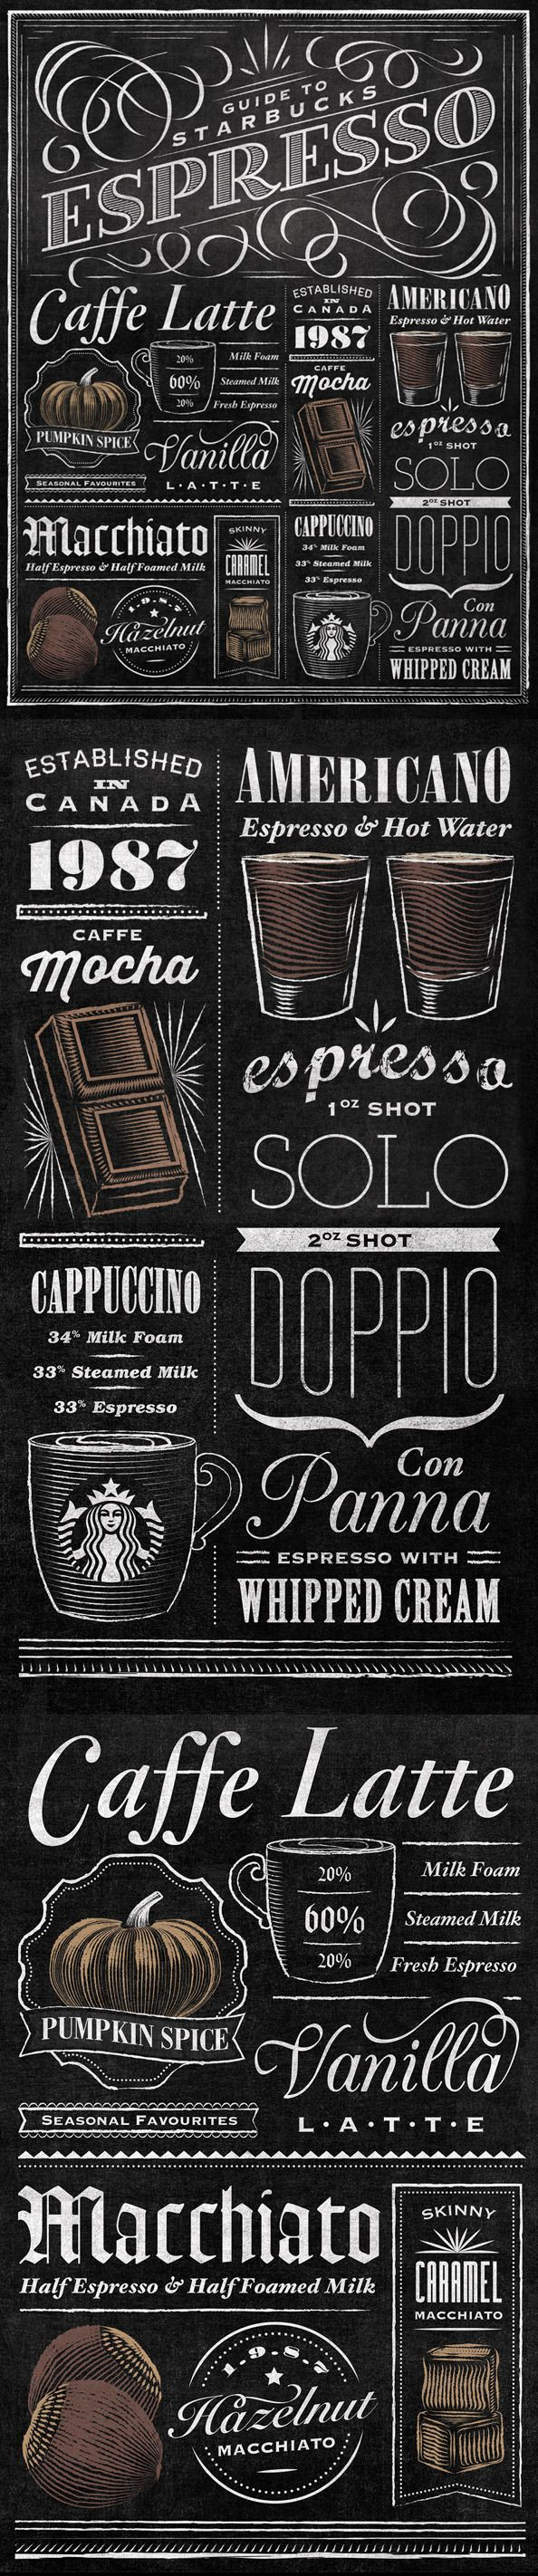 Spresso Guide Typographic Mural by Jaymie McAmmond.